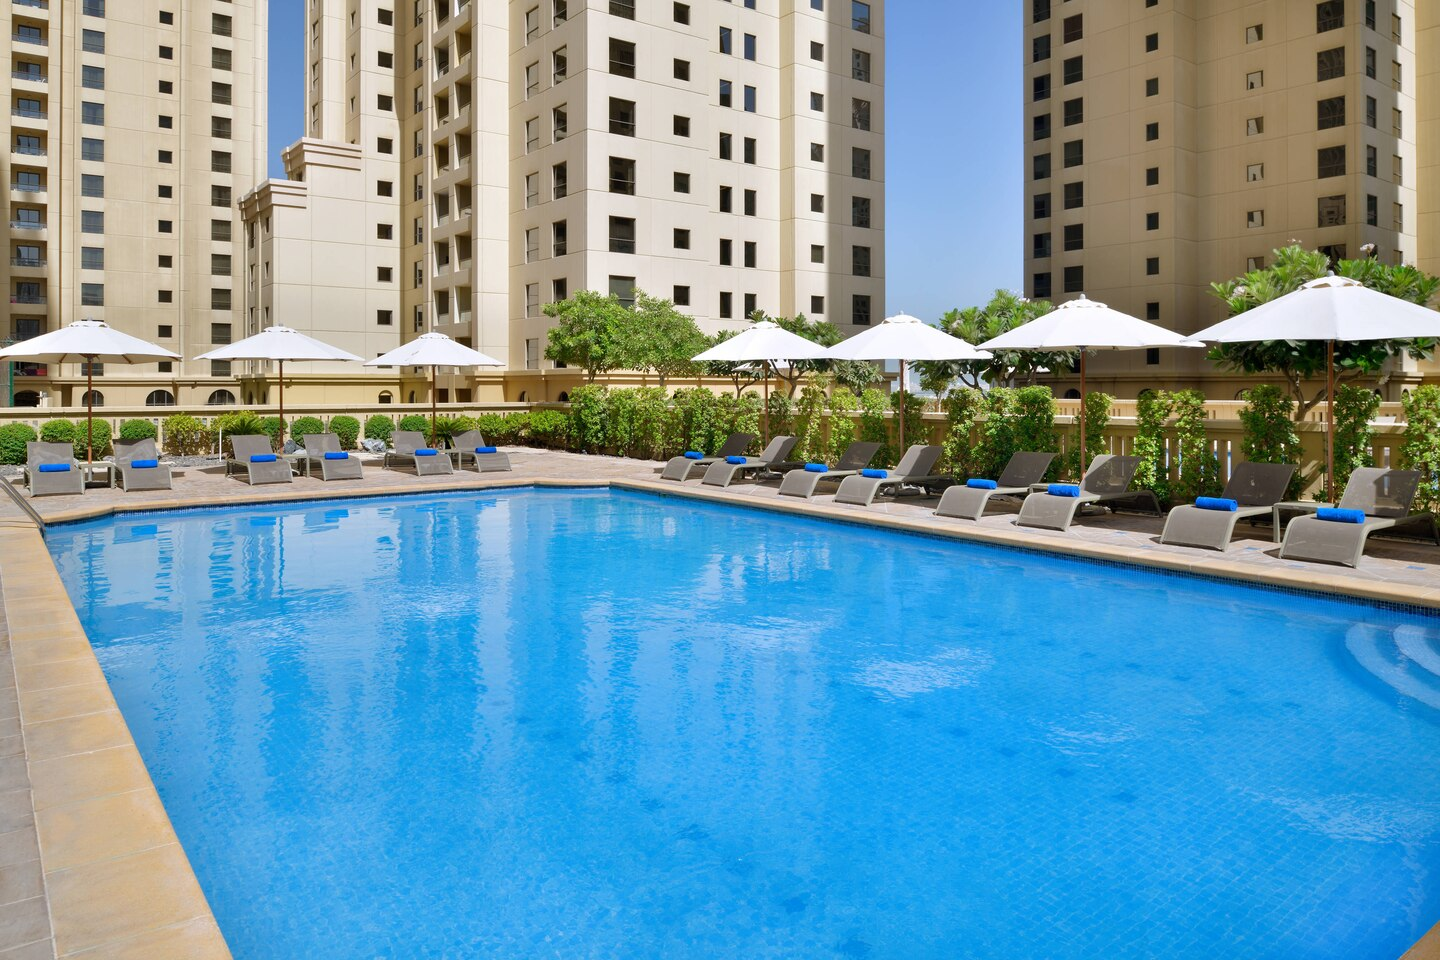 1/4  	Delta Hotels by Marriott Jumeirah Beach - Duabi